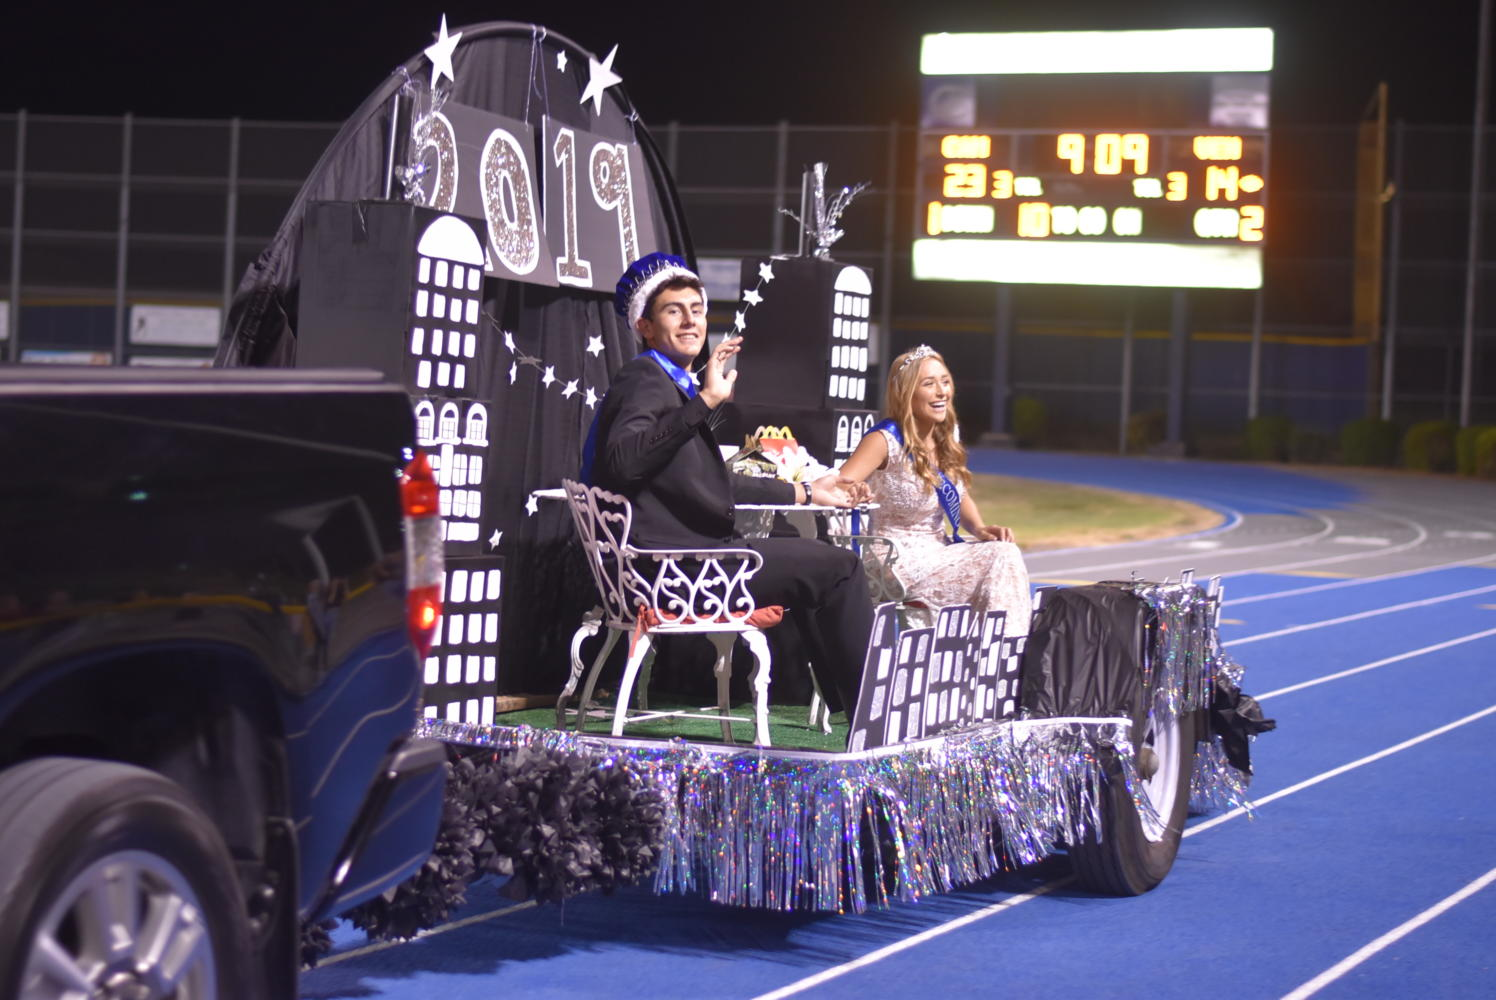 Junior Homecoming Prince and Princess, Jamie Jaquez and Ciera Muscarella, wave to the crowd as they ride in their float during halftime.